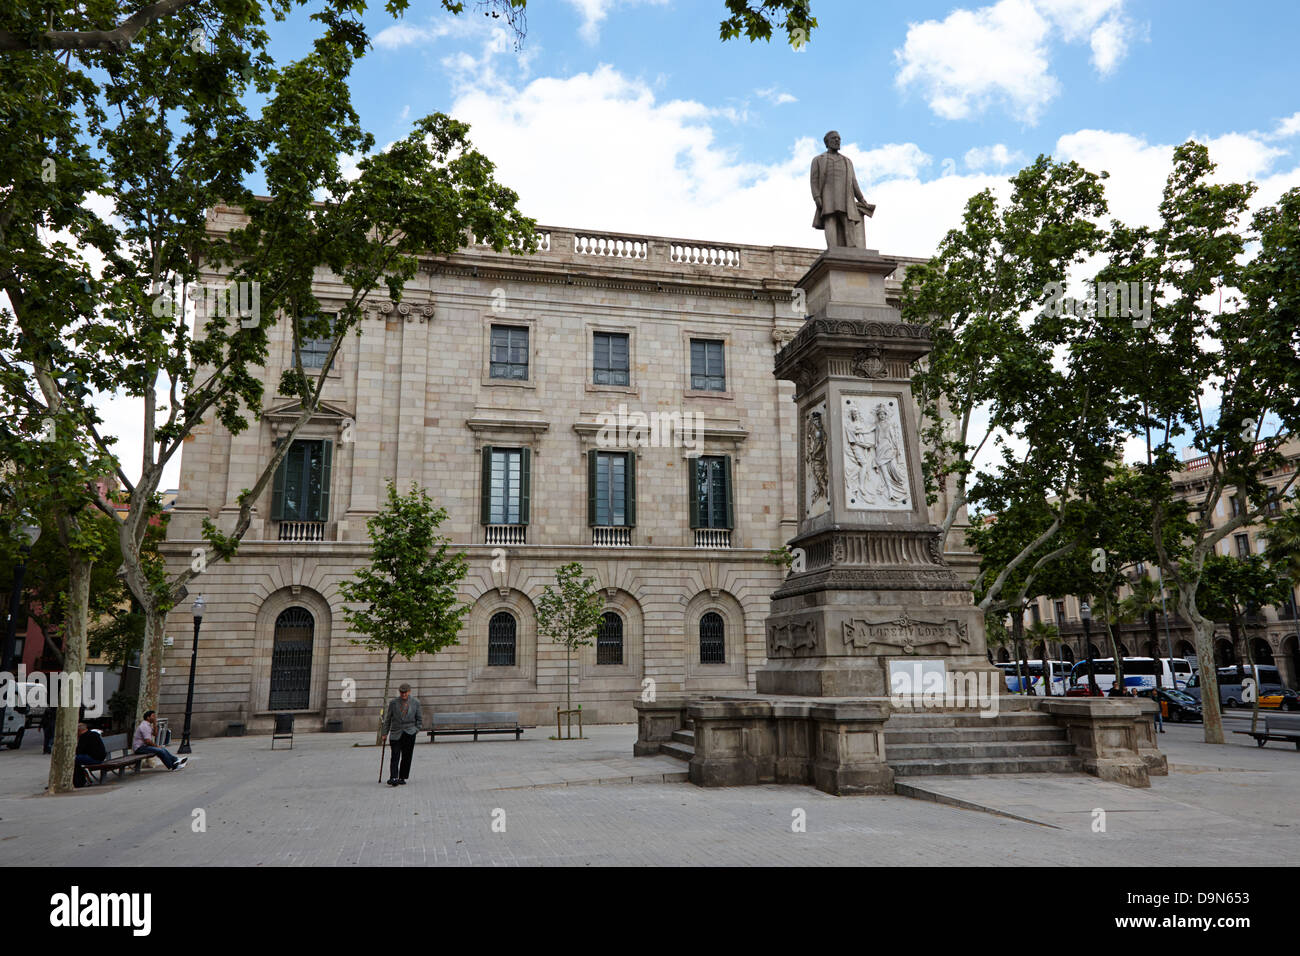 palau de la llotja palace former stock exchange and antonio lopez y lopez memorial barcelona catalonia spain Stock Photo